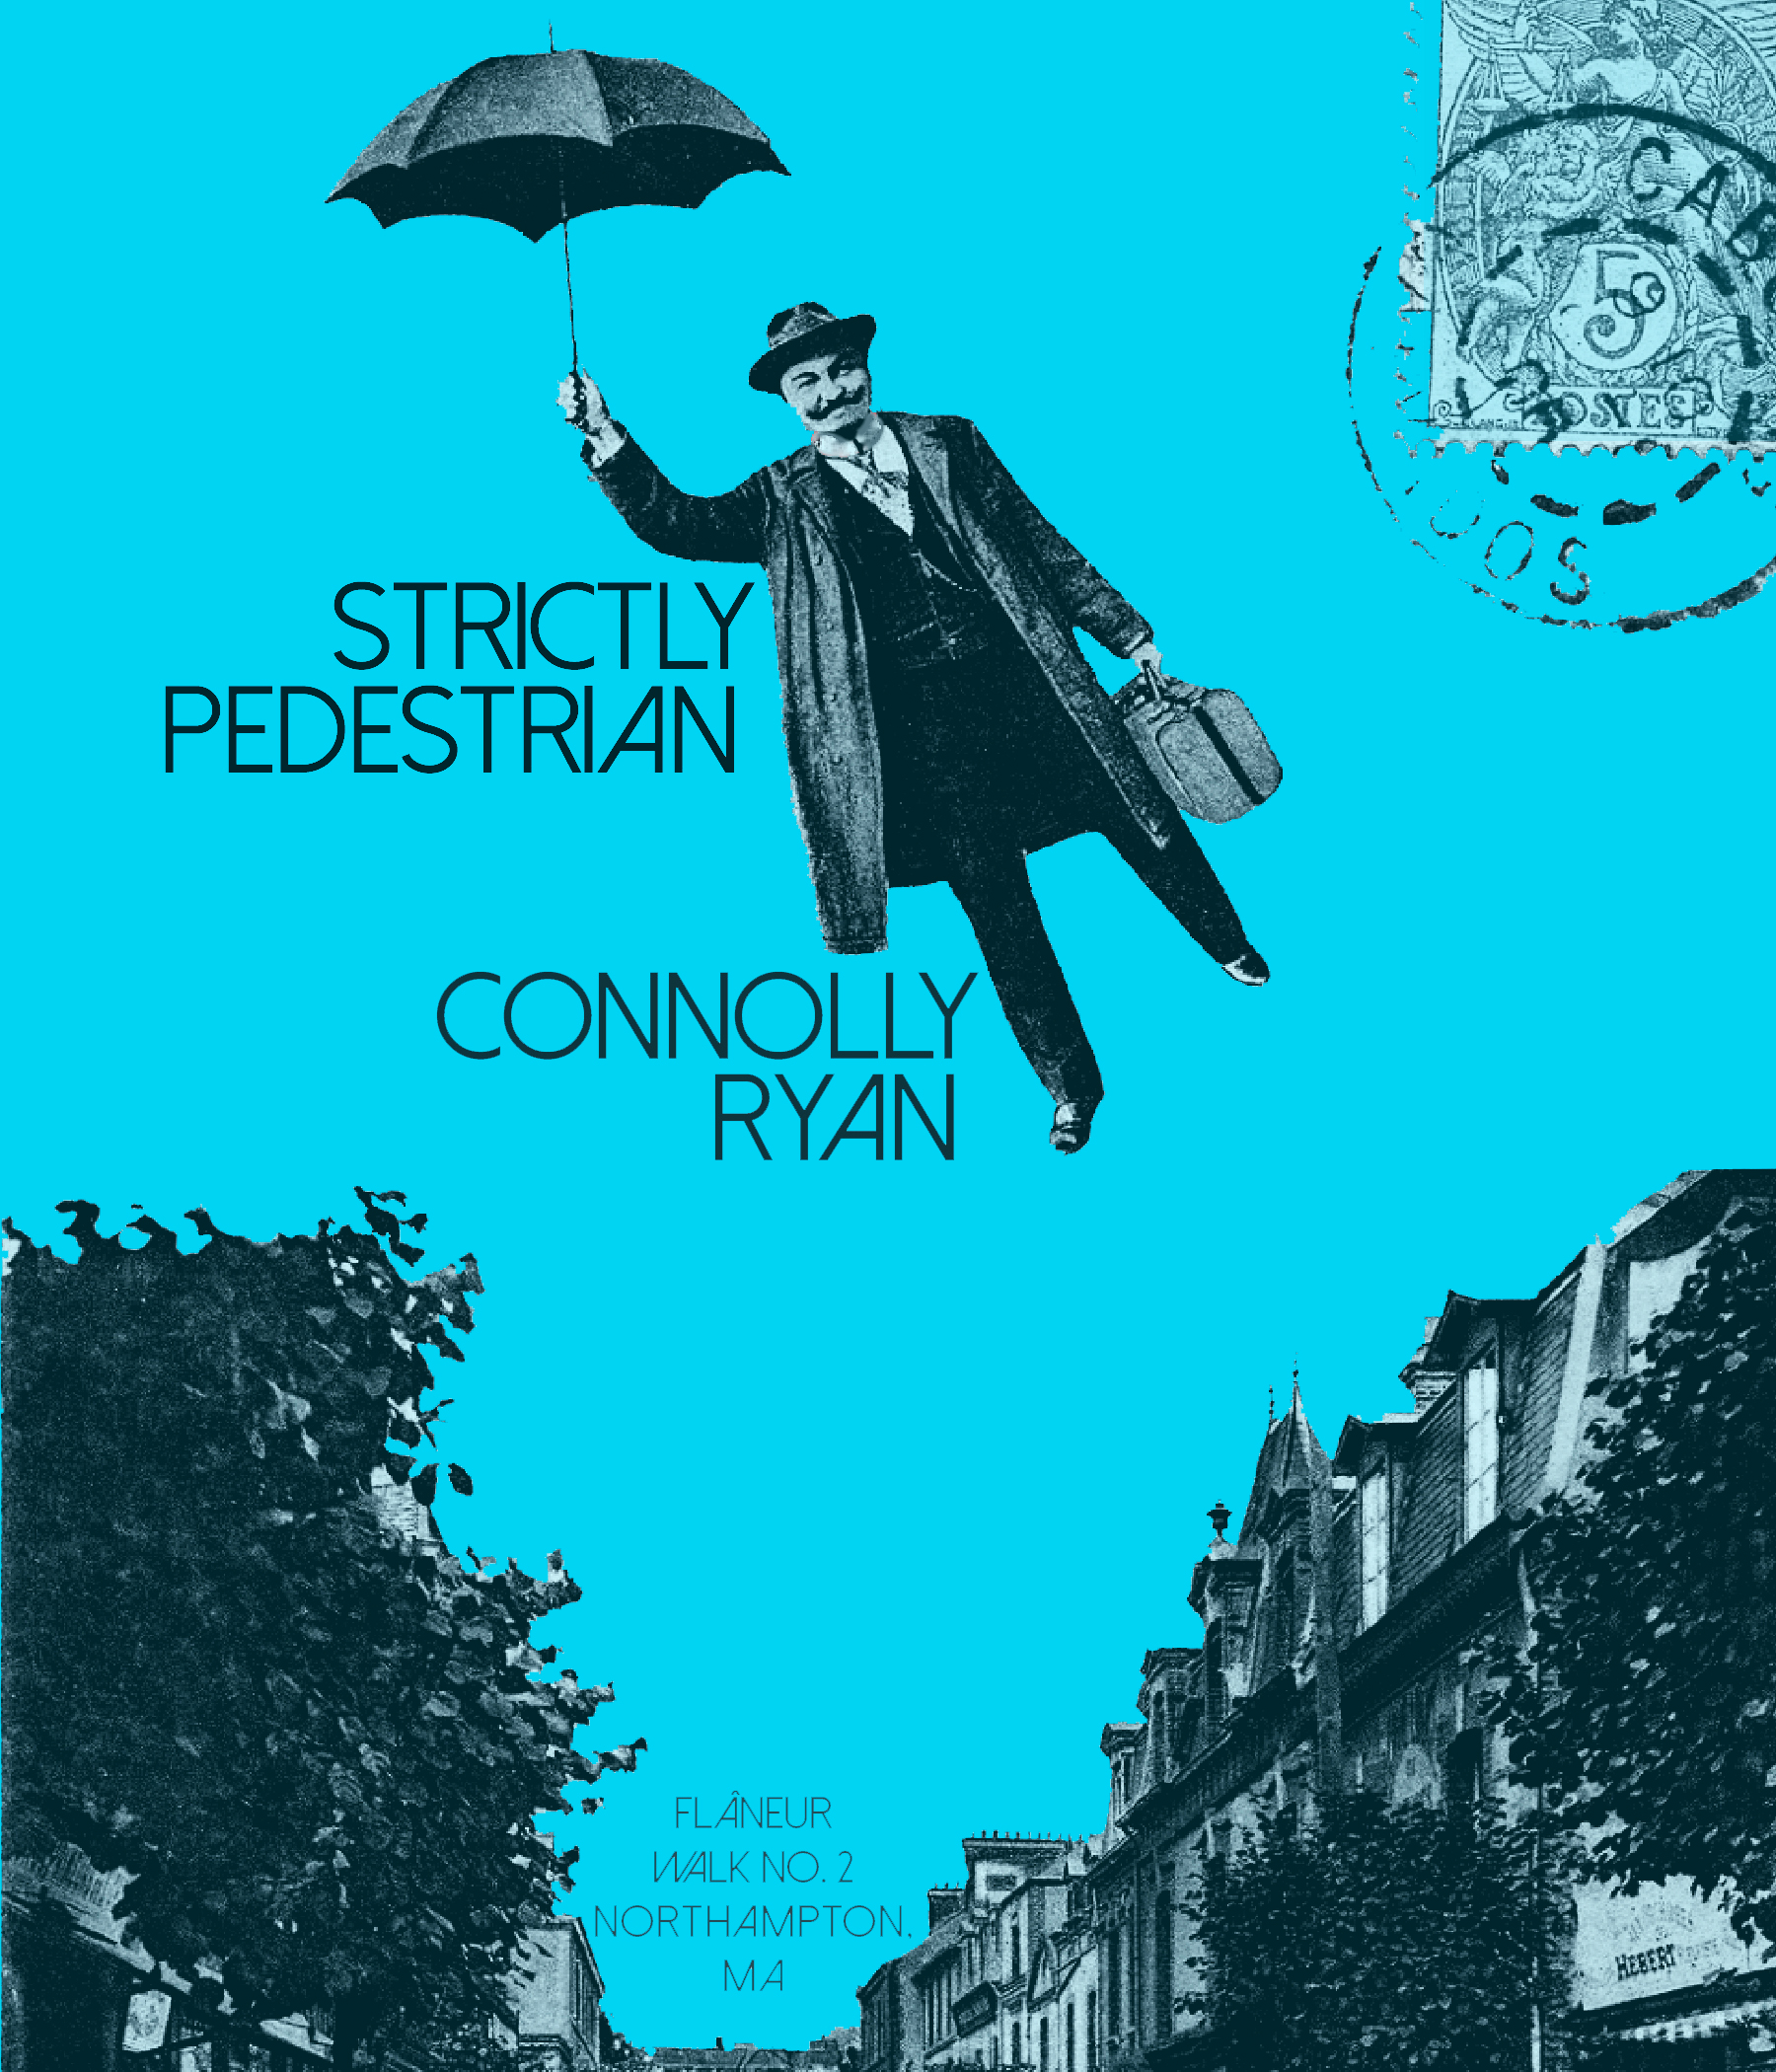 Strictly Pedestrian  by Connolly Ryan (Shape&Nature Press, 2014)| Flâneur Walk Pamphlet Series, No. 2: Northampton, MA